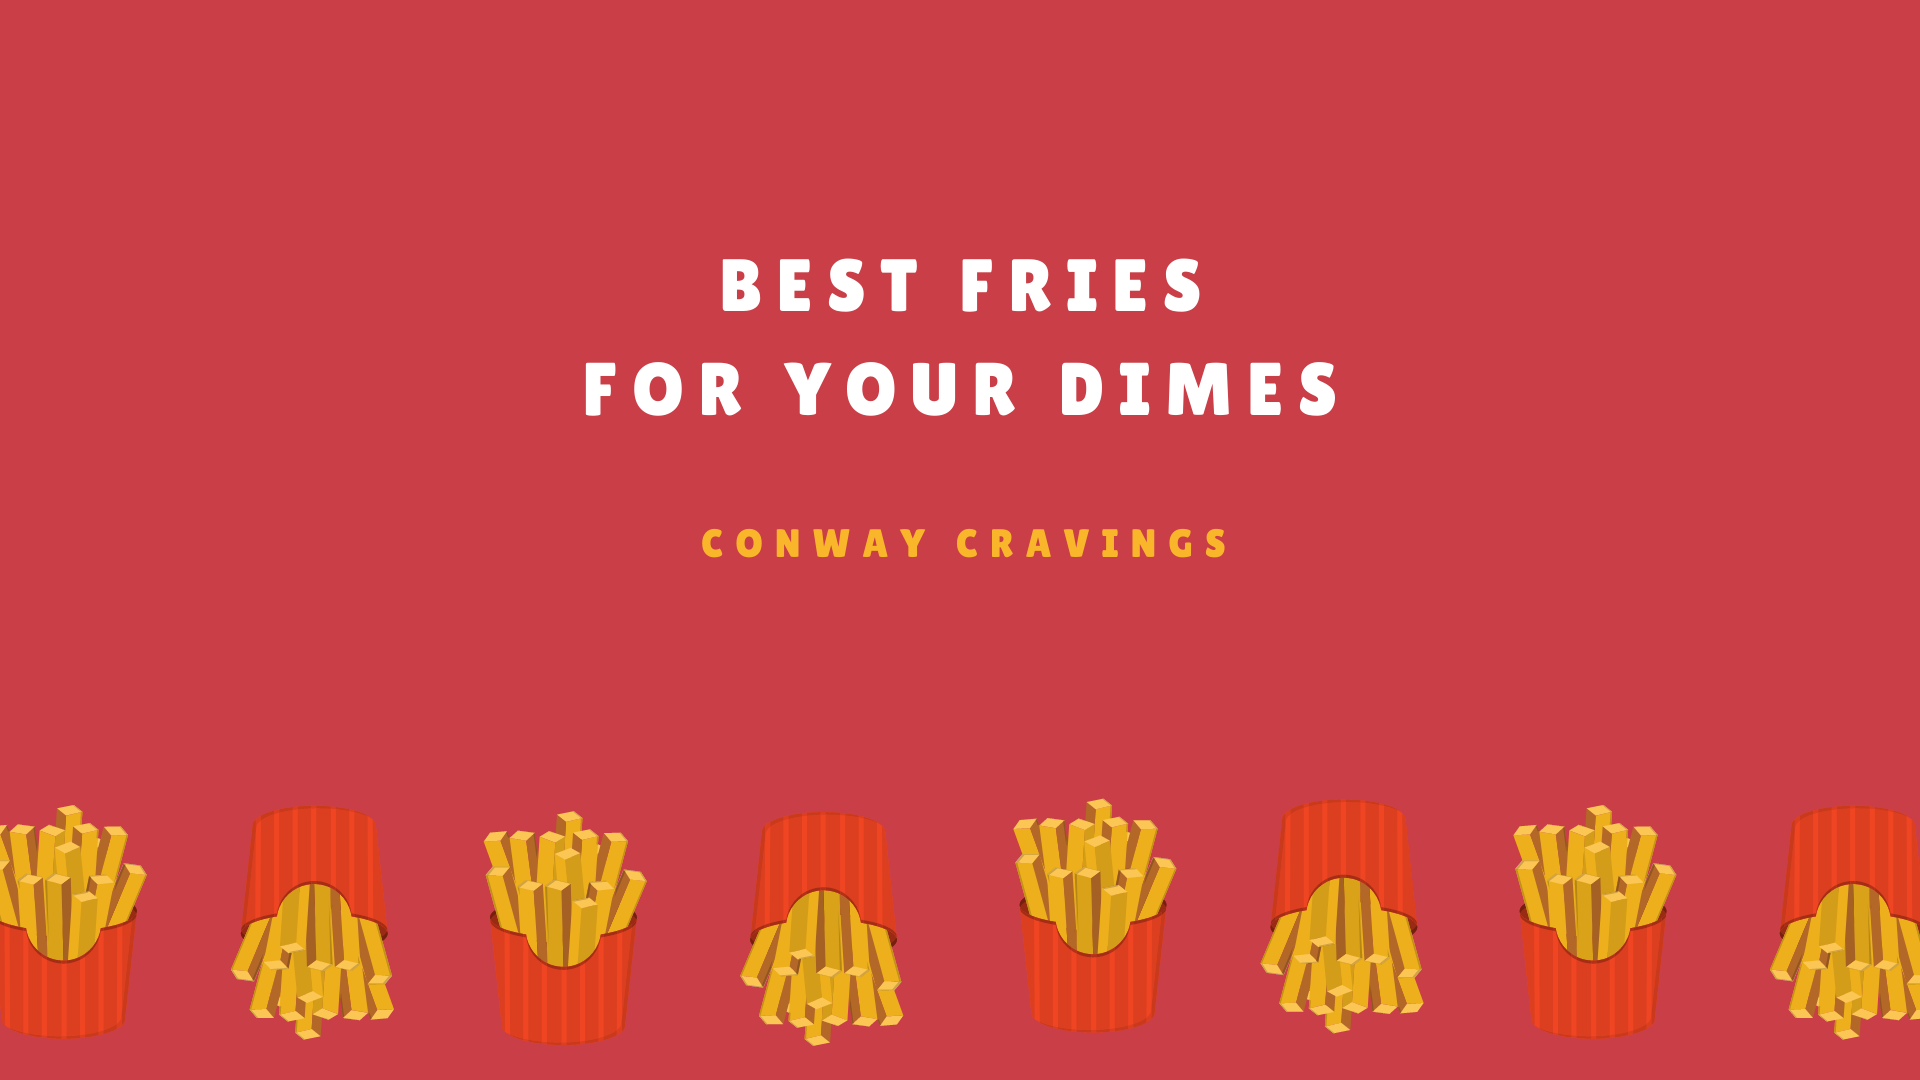 Conway Cravings: best fries for your dimes